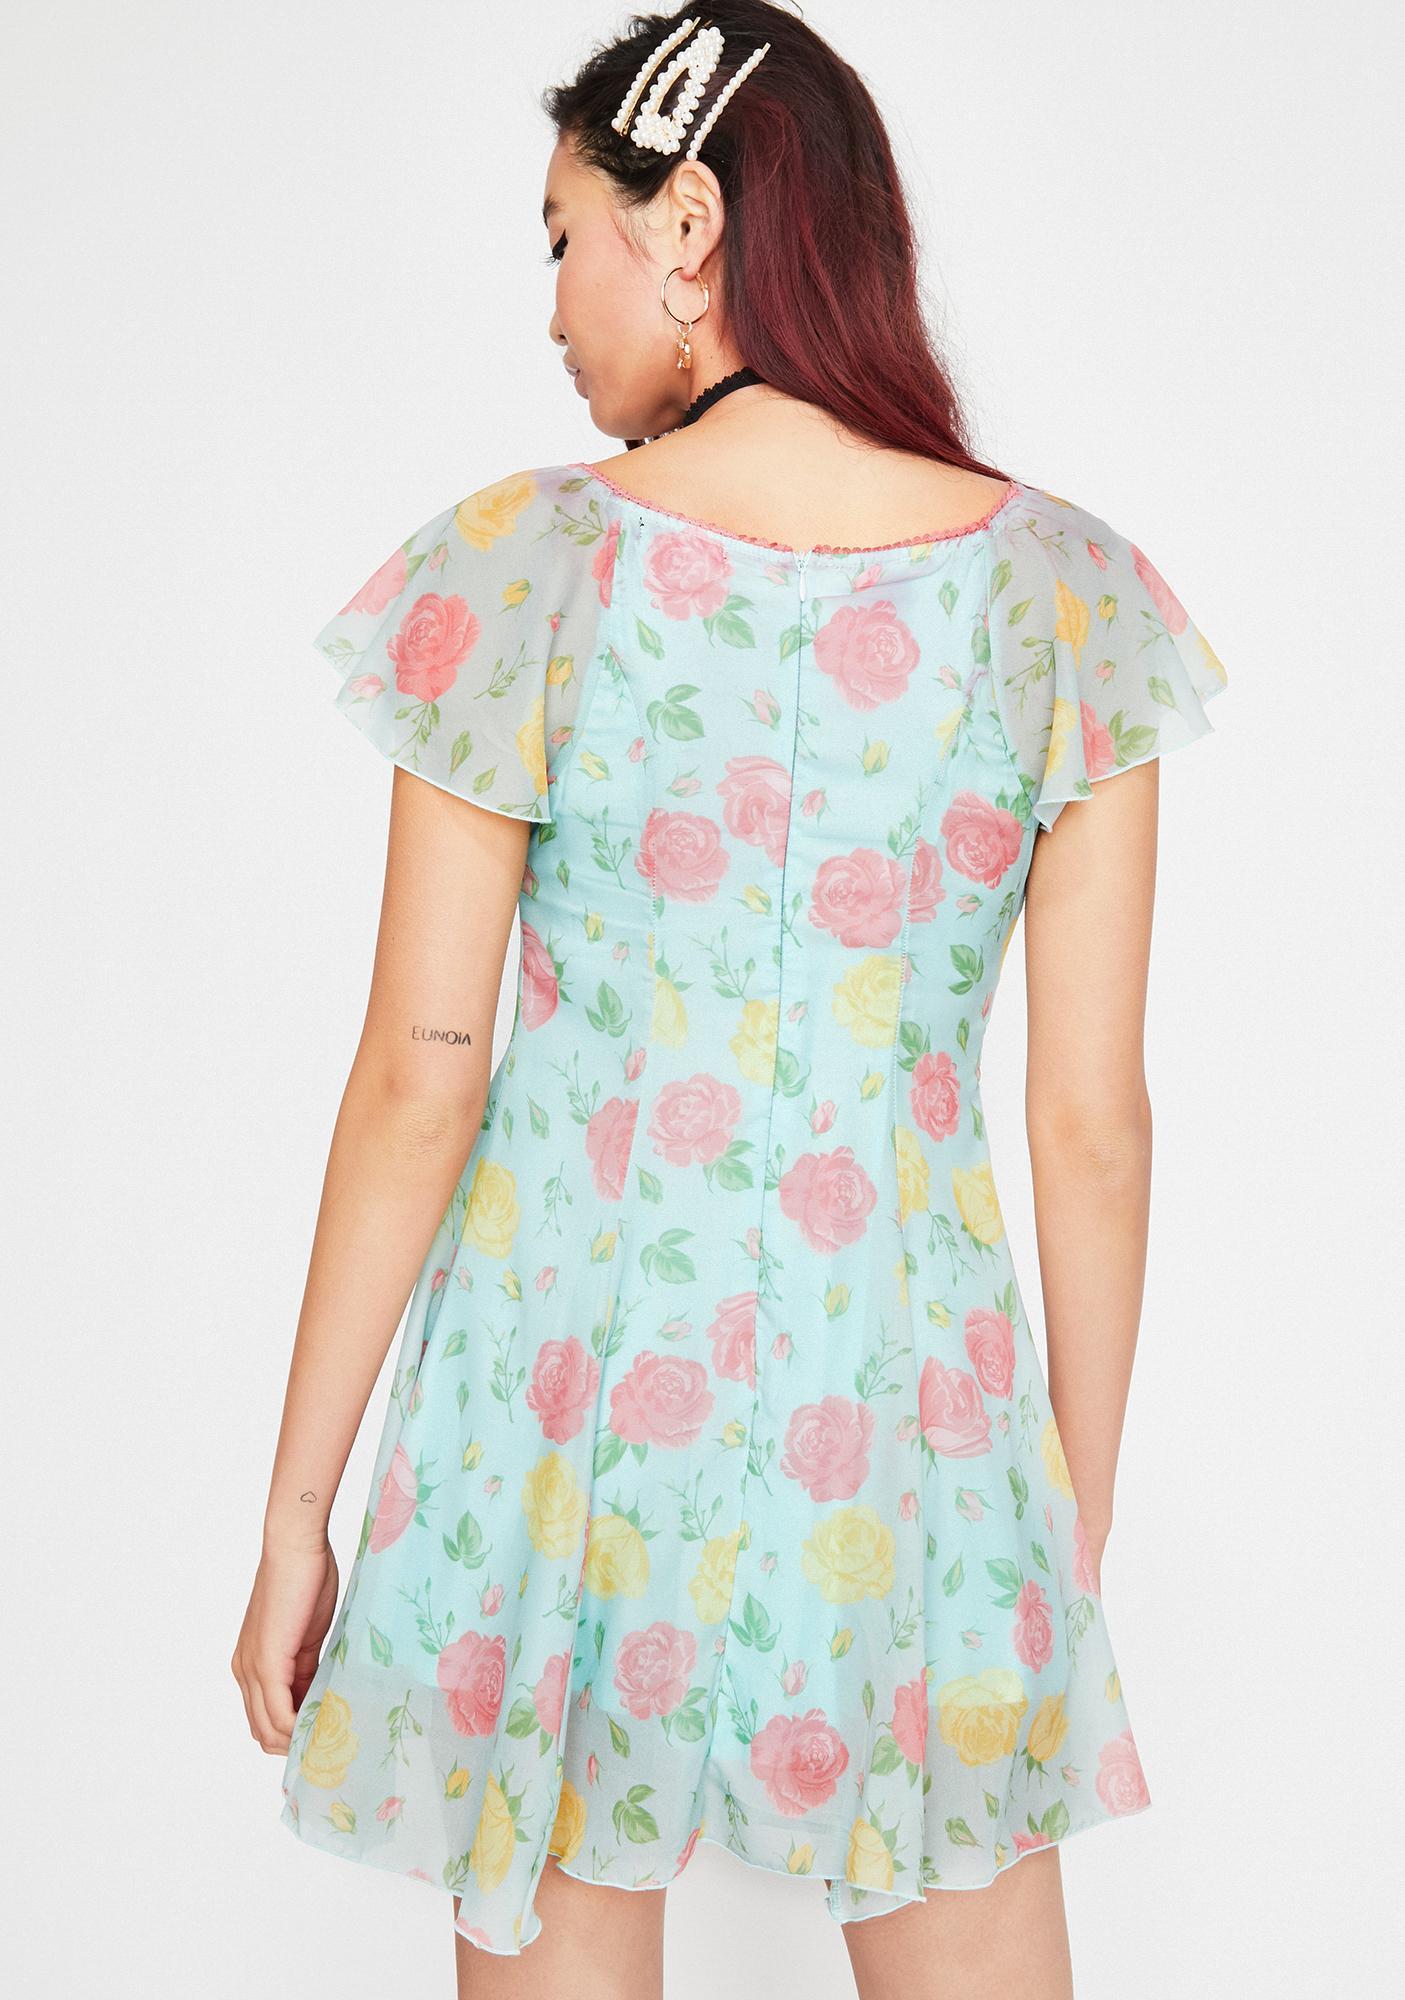 Current Mood Sherbert Meadow Floral Dress